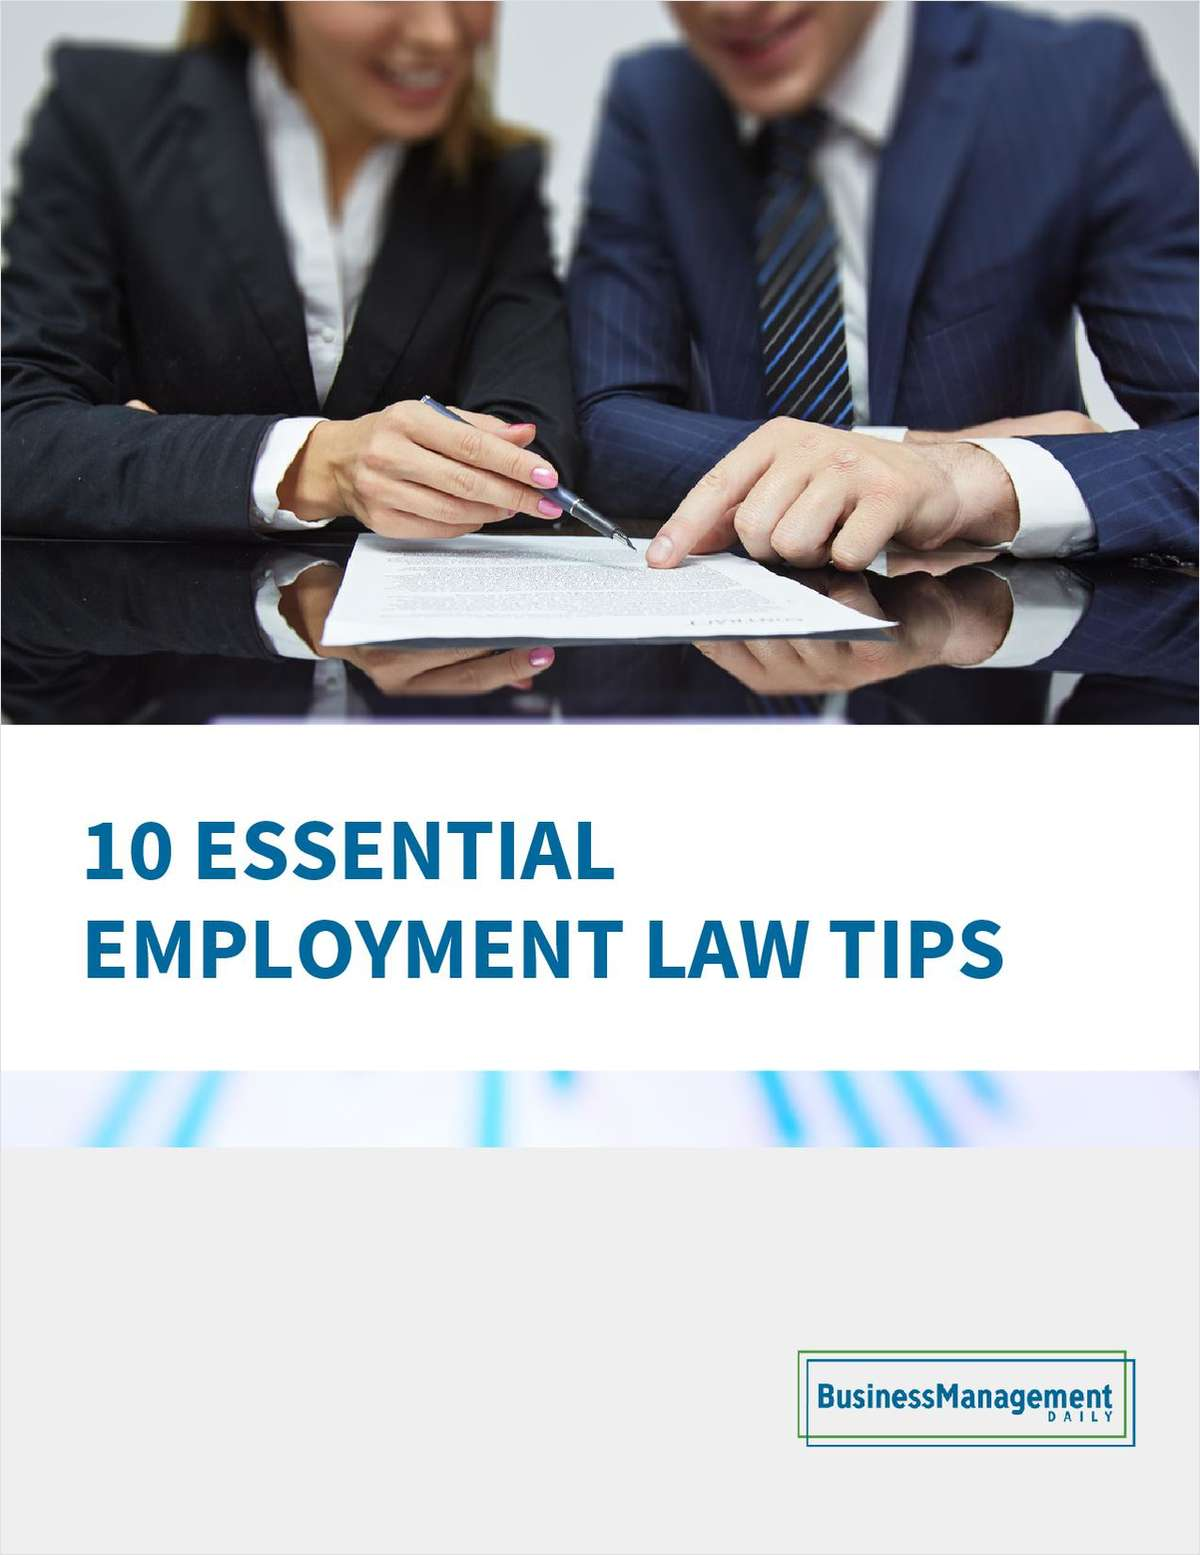 10 Essential Employment Law Tips